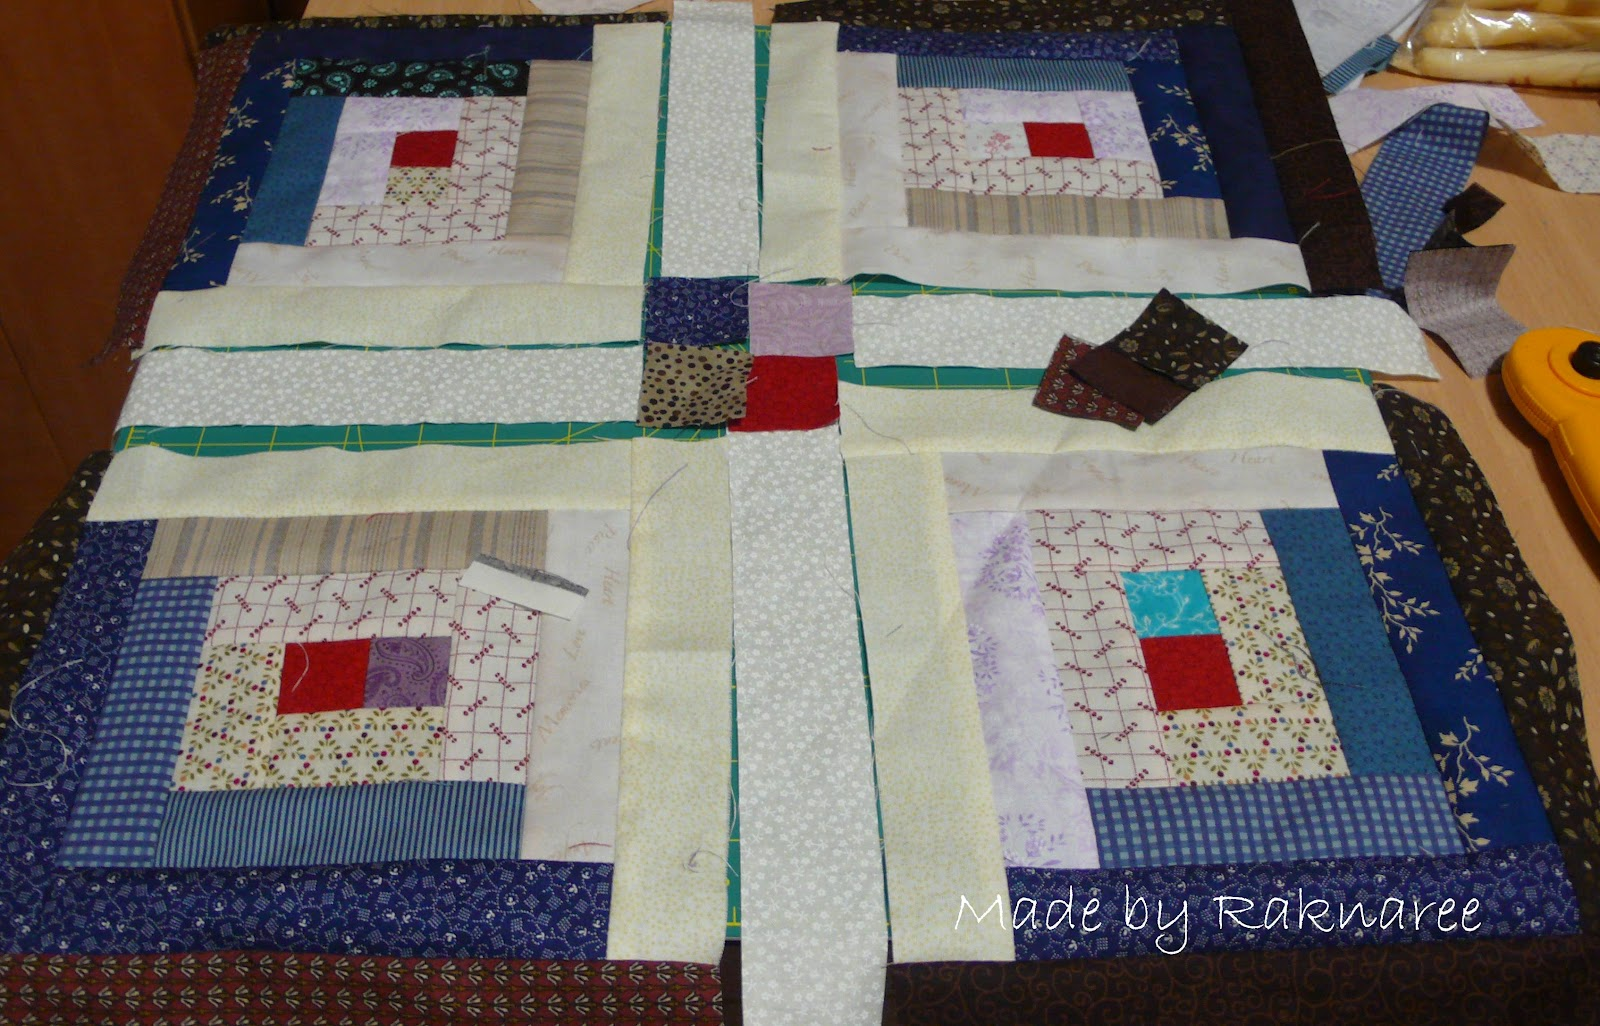 Very Impressive portraiture of Log Cabin Come2Quilt with #712618 color and 1600x1026 pixels